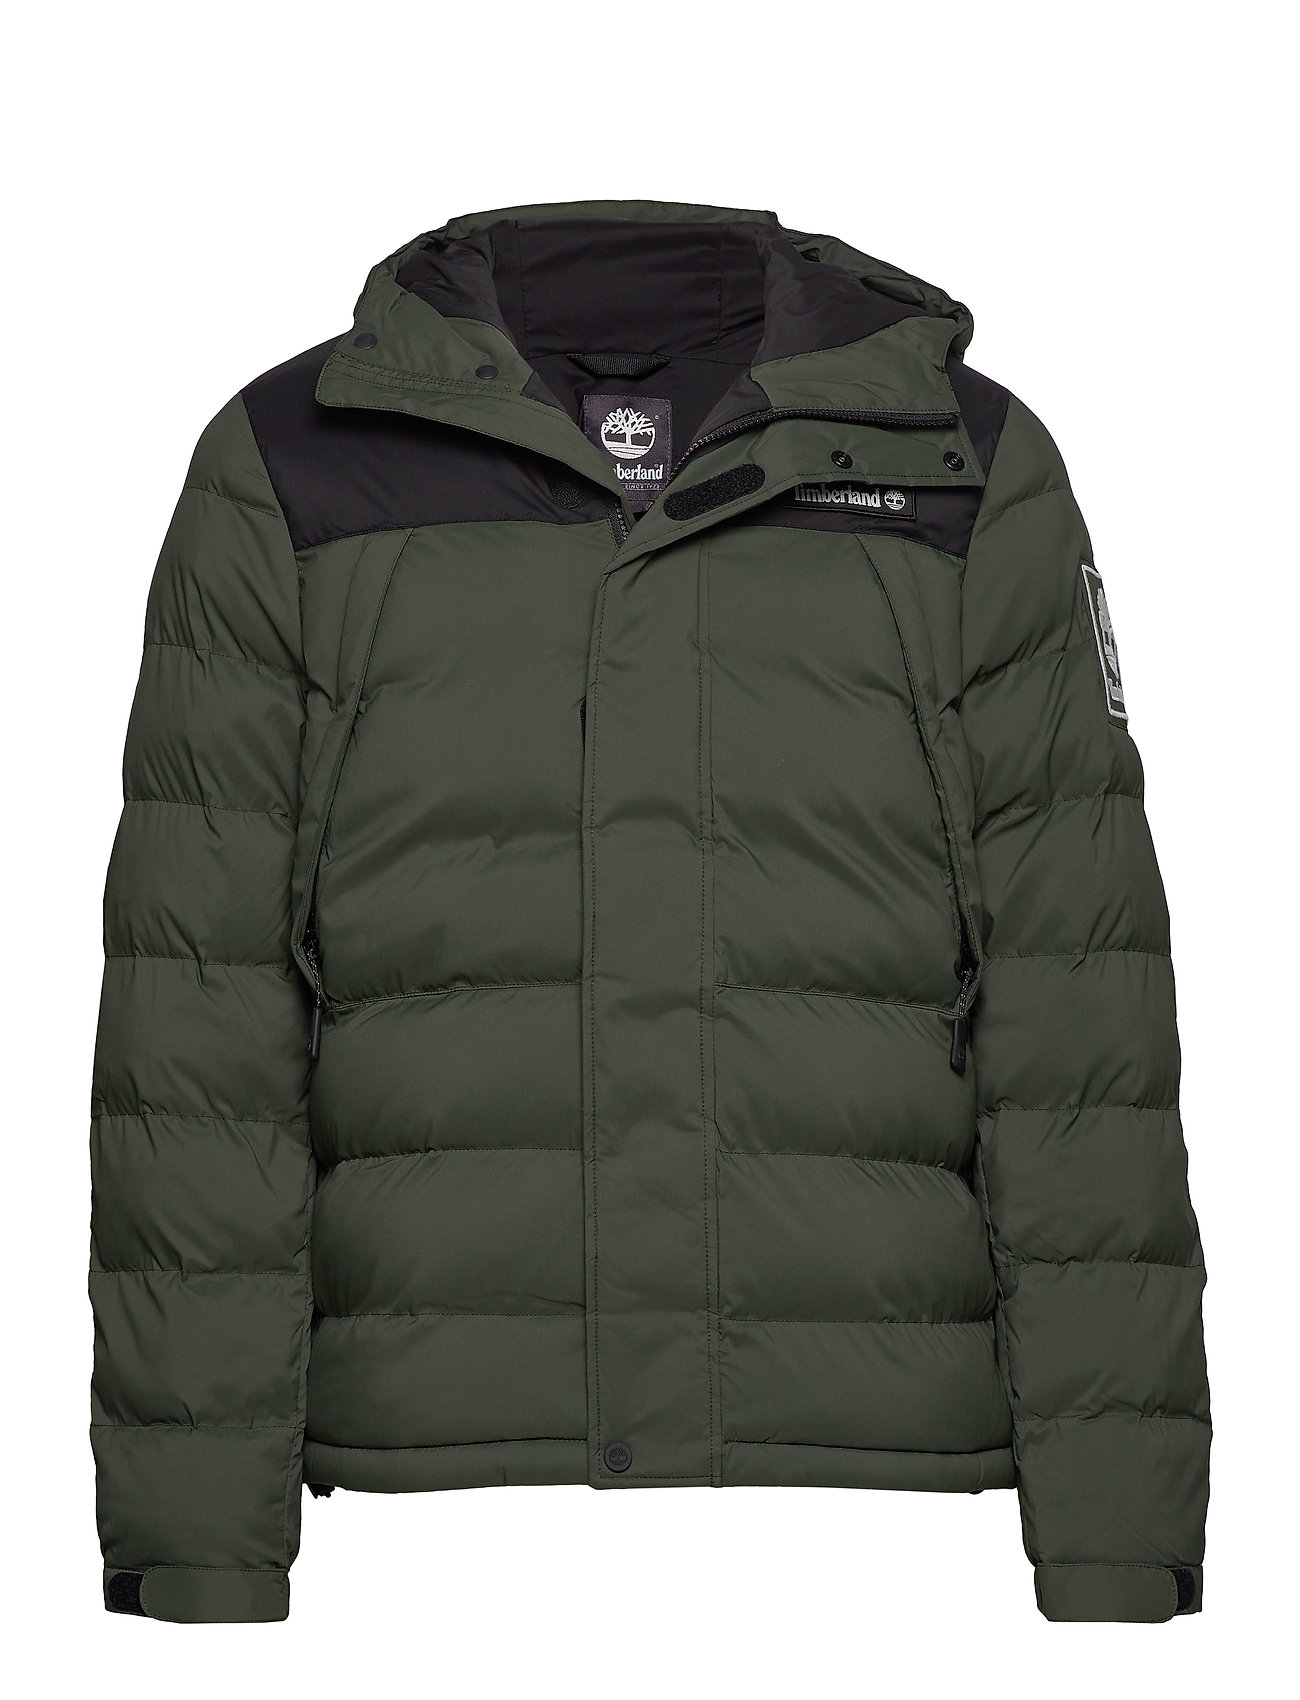 Timberland Outdoor Archive Puffer Jacket - DUFFEL BAG/BLACK